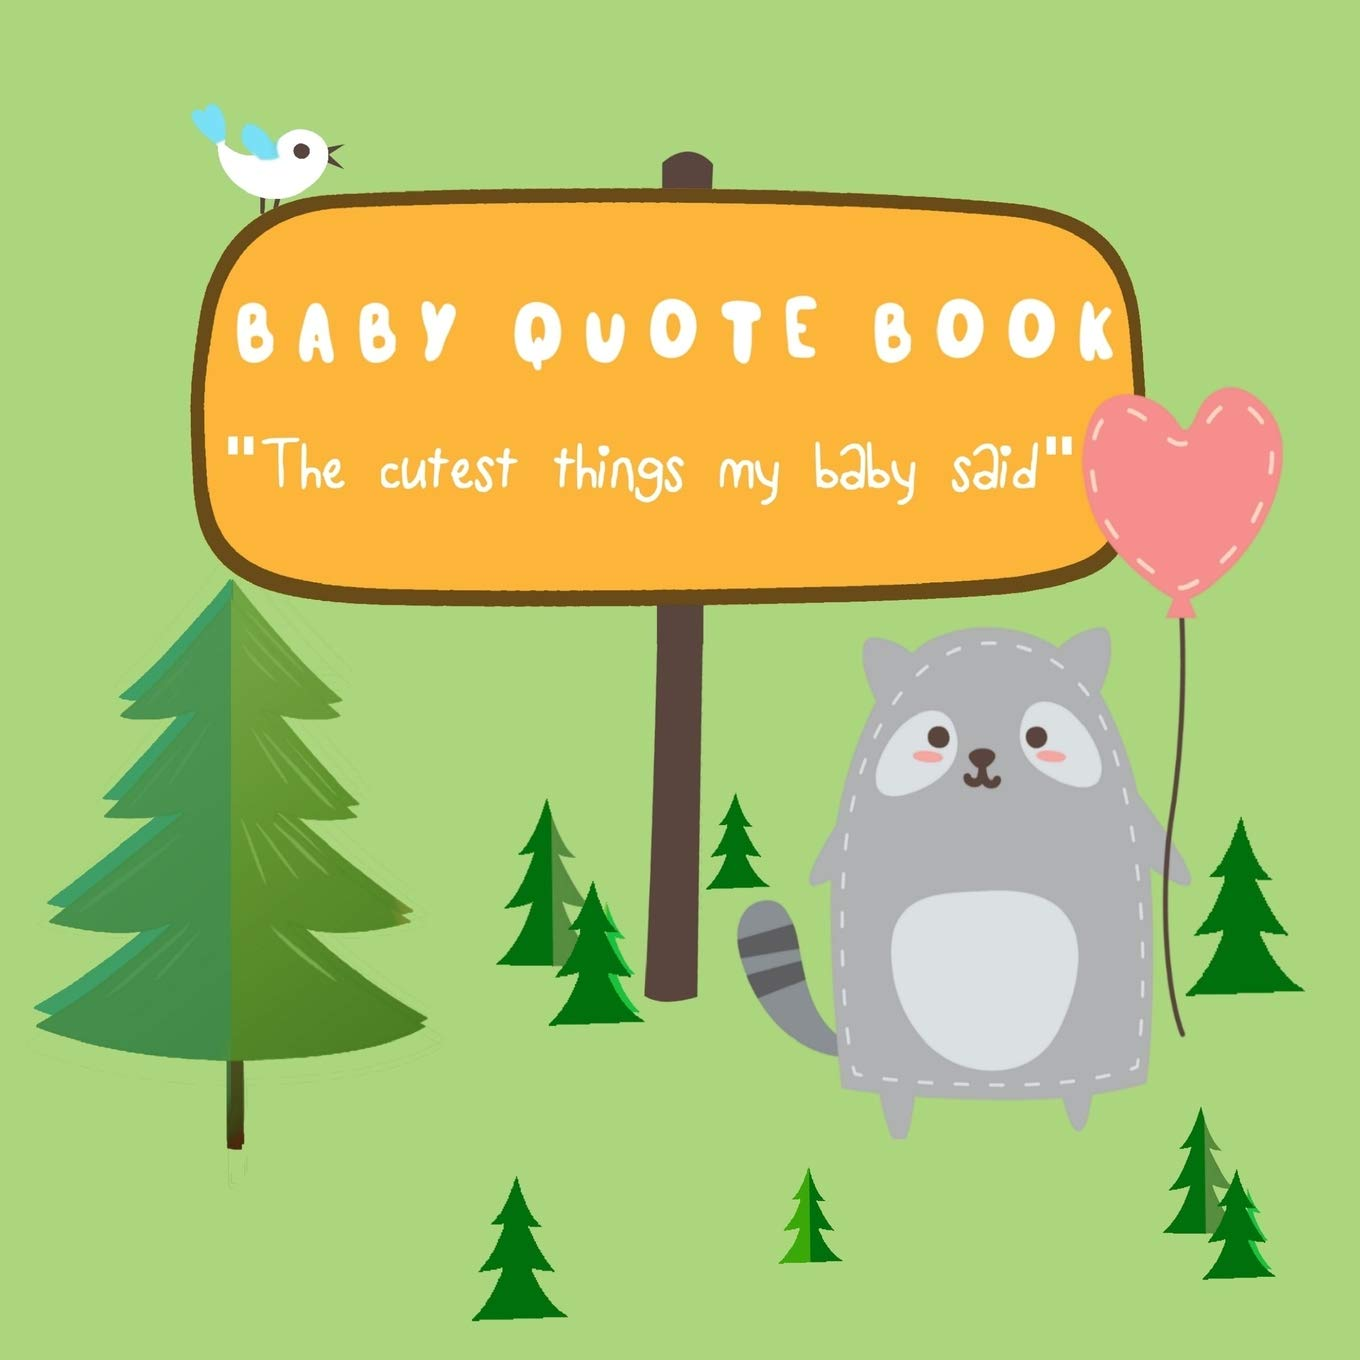 Amazon.com: Baby Quote Book - The Cutest Things My Baby Said ...